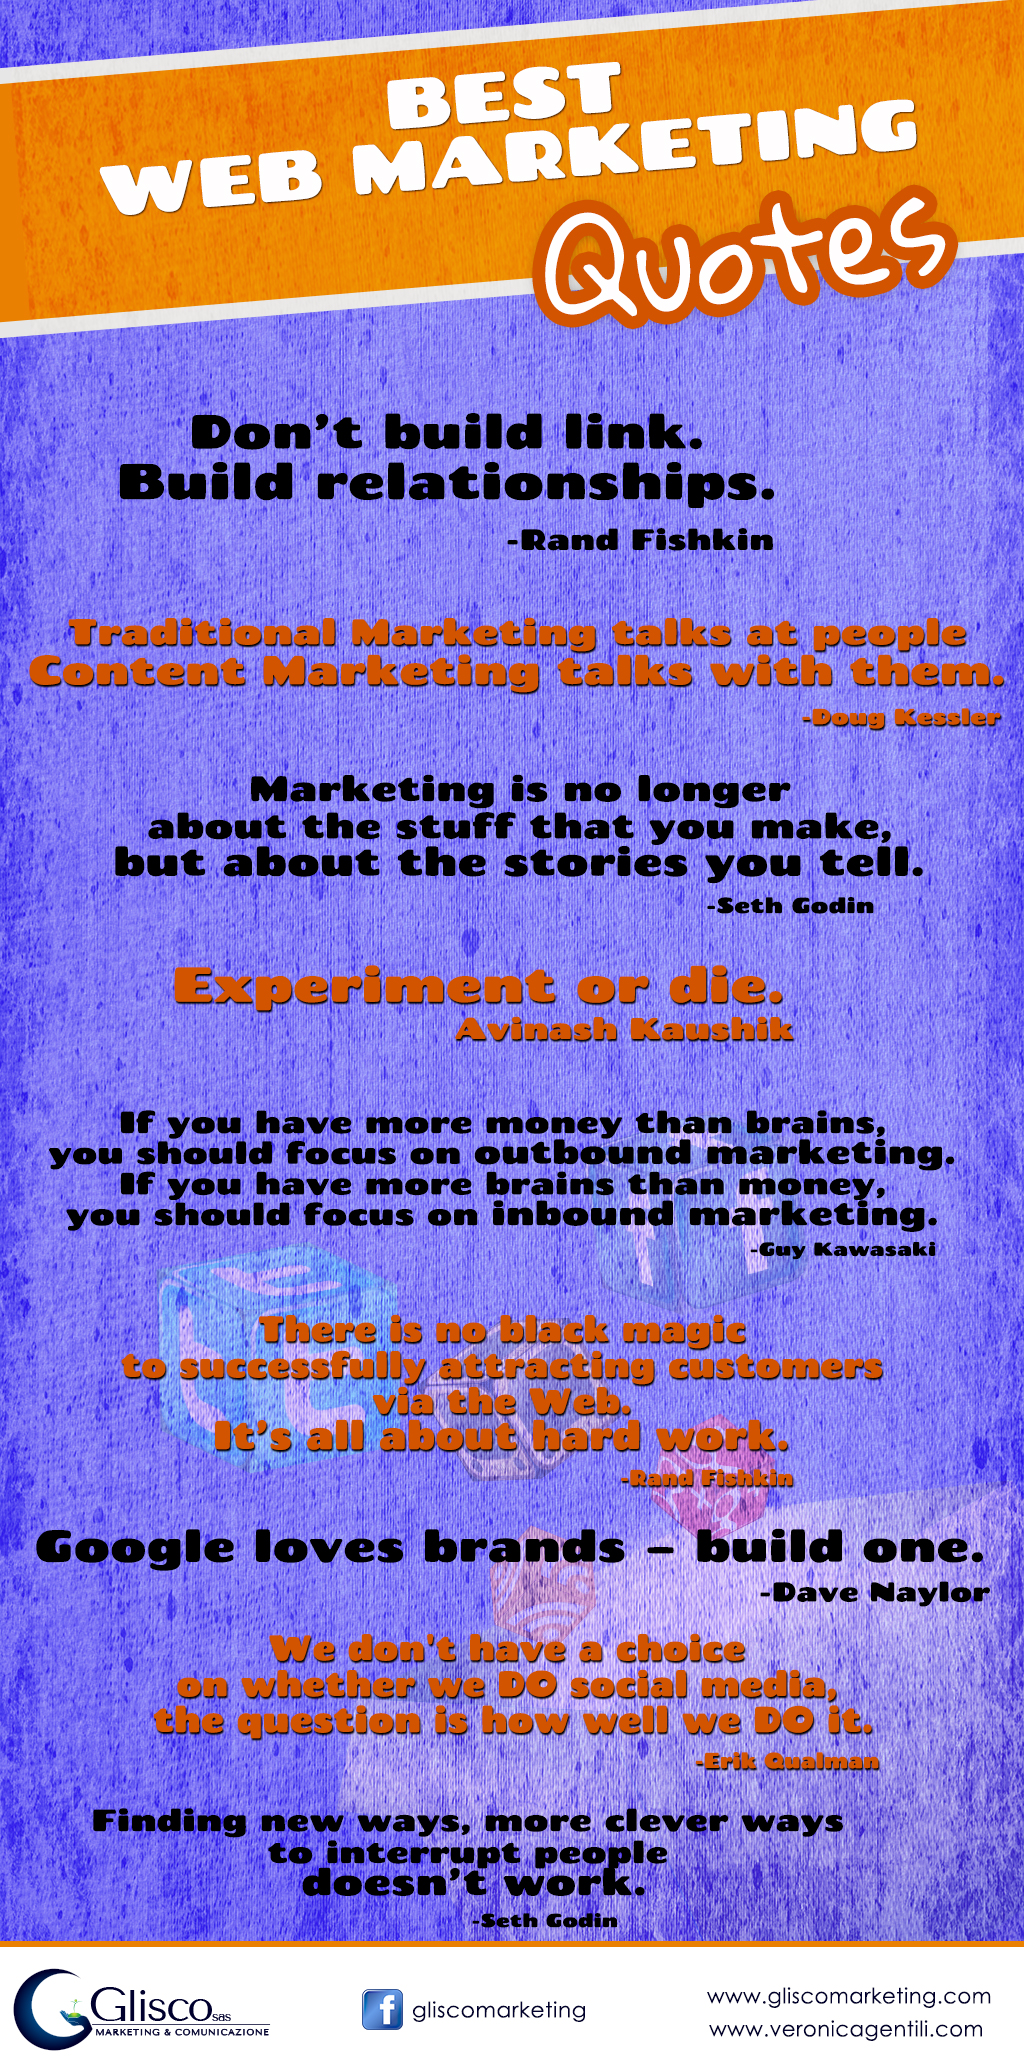 Best Web Marketing Quote